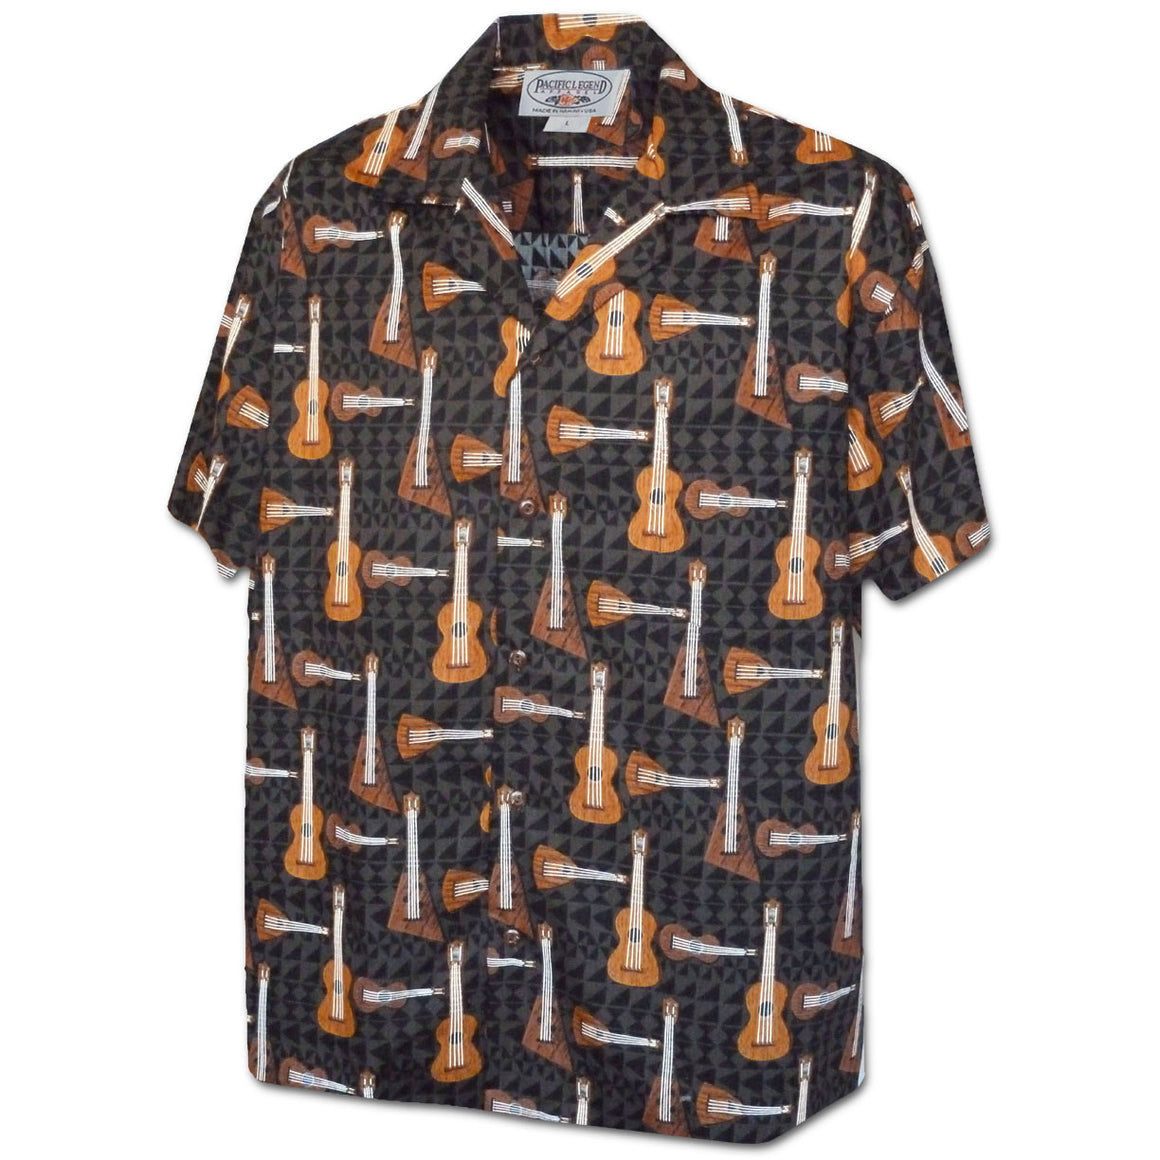 Ukulele Time Black Hawaiian Shirt